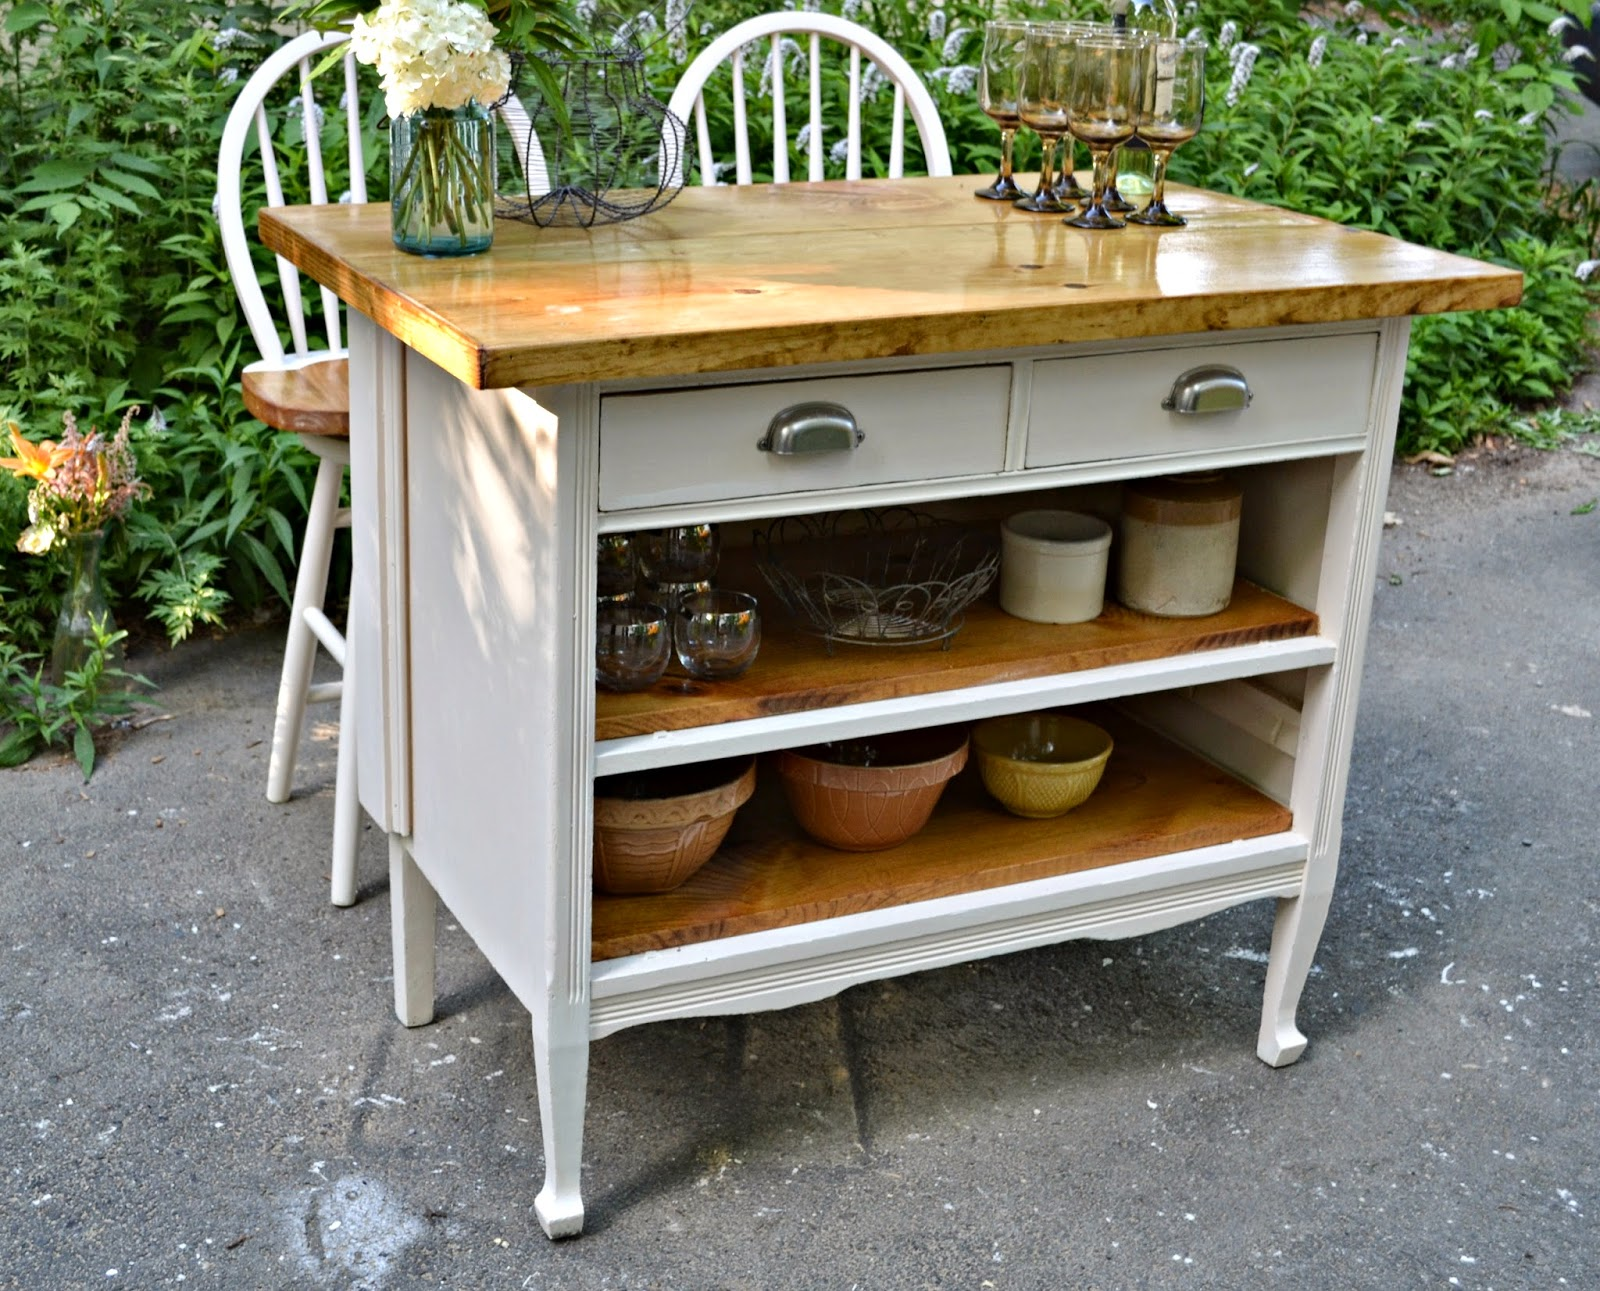 Repurposed Antique Dresser As A Kitchen Island With A: Heir And Space: Antique Dresser Turned Cottage Kitchen Island